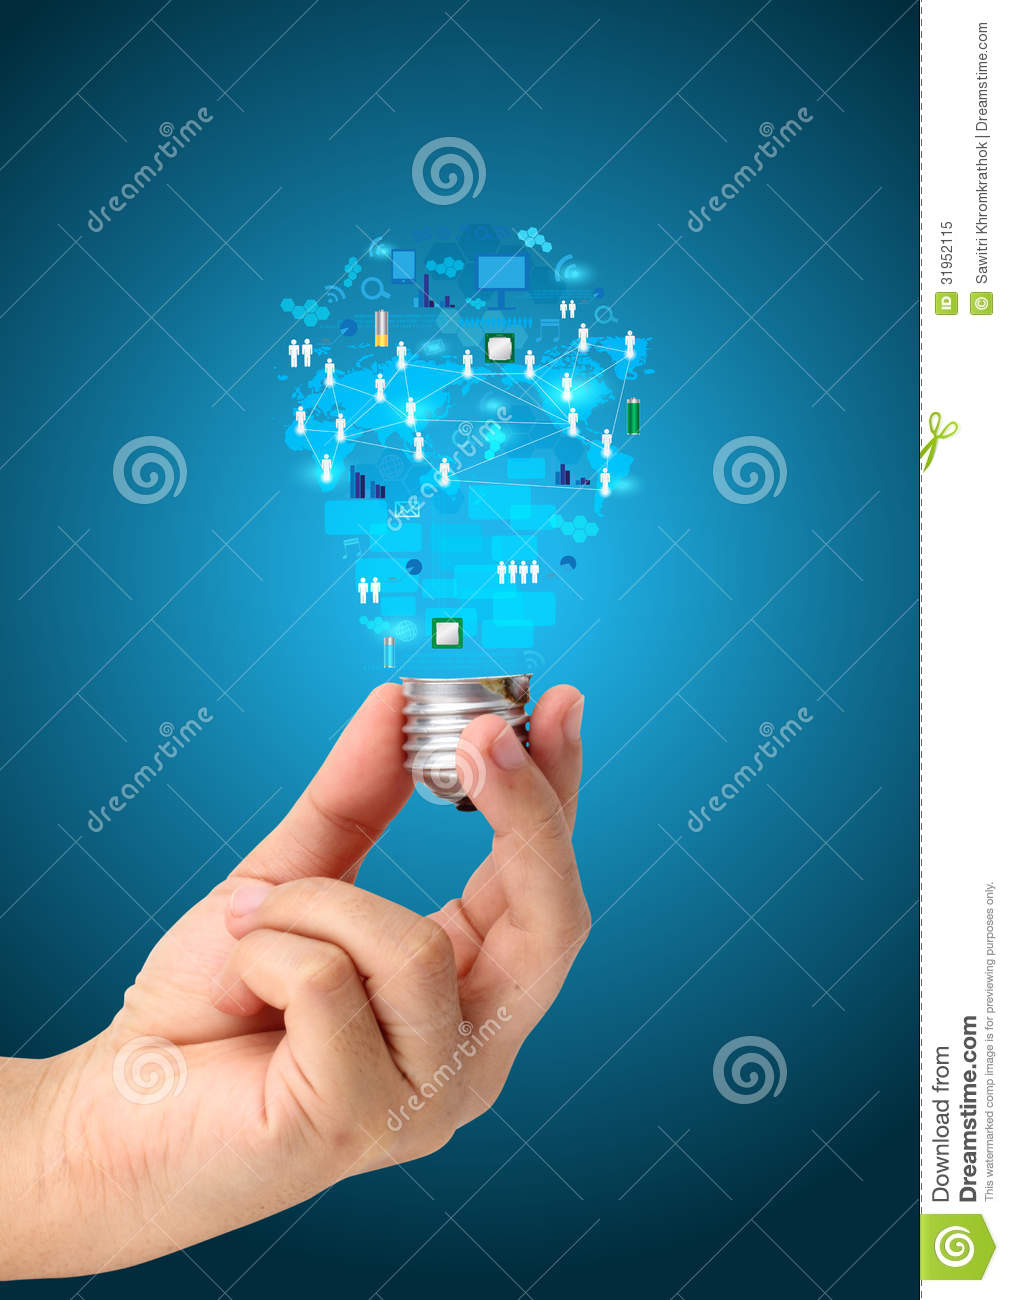 Creative Light Bulb In Hand With Technology Business Network Stock ...